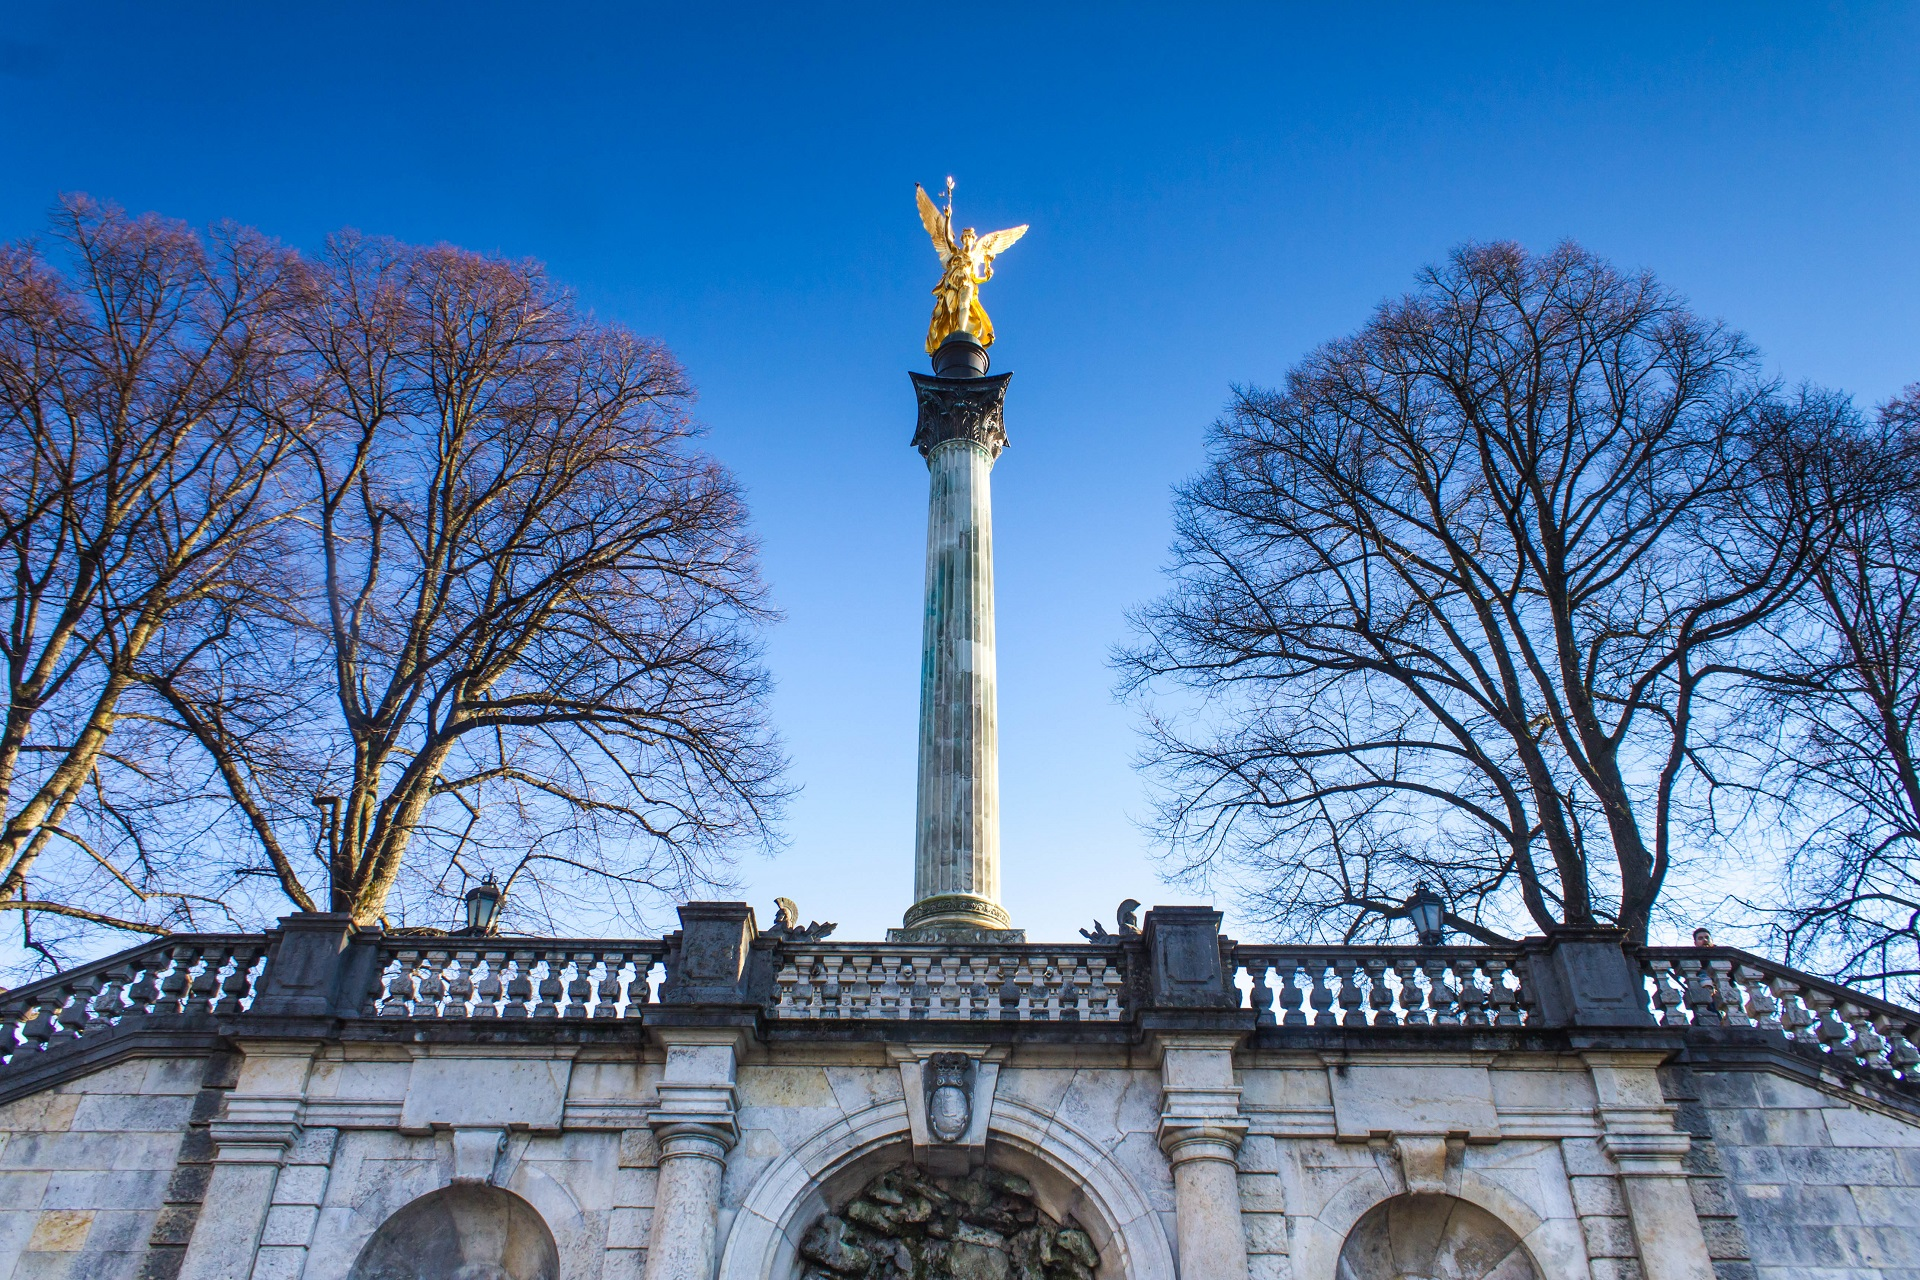 golden-peace-angel-statue-in-munich-shutterstock_170262488-2